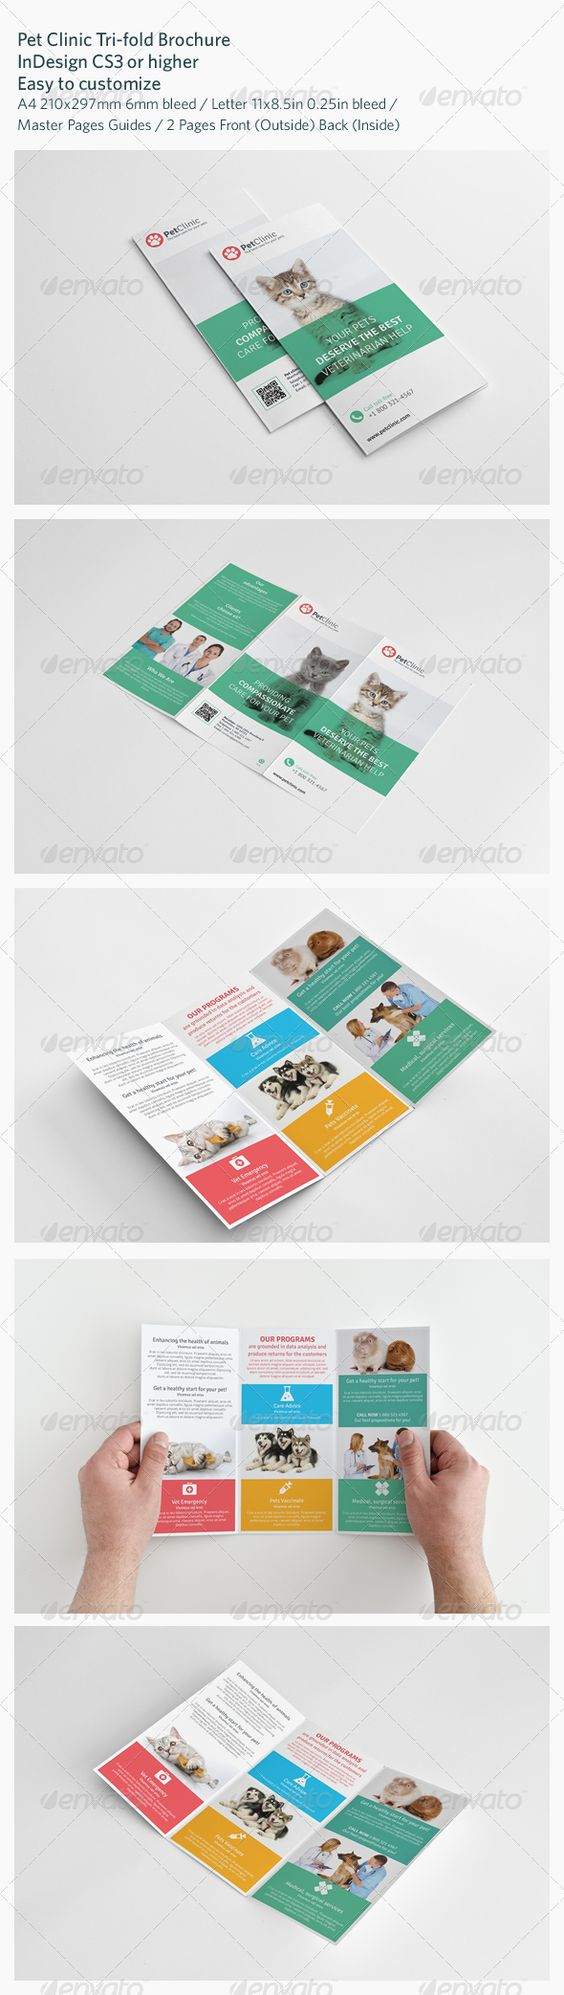 tri fold brochure template indesign cs6 - fonts download medical and kittens on pinterest